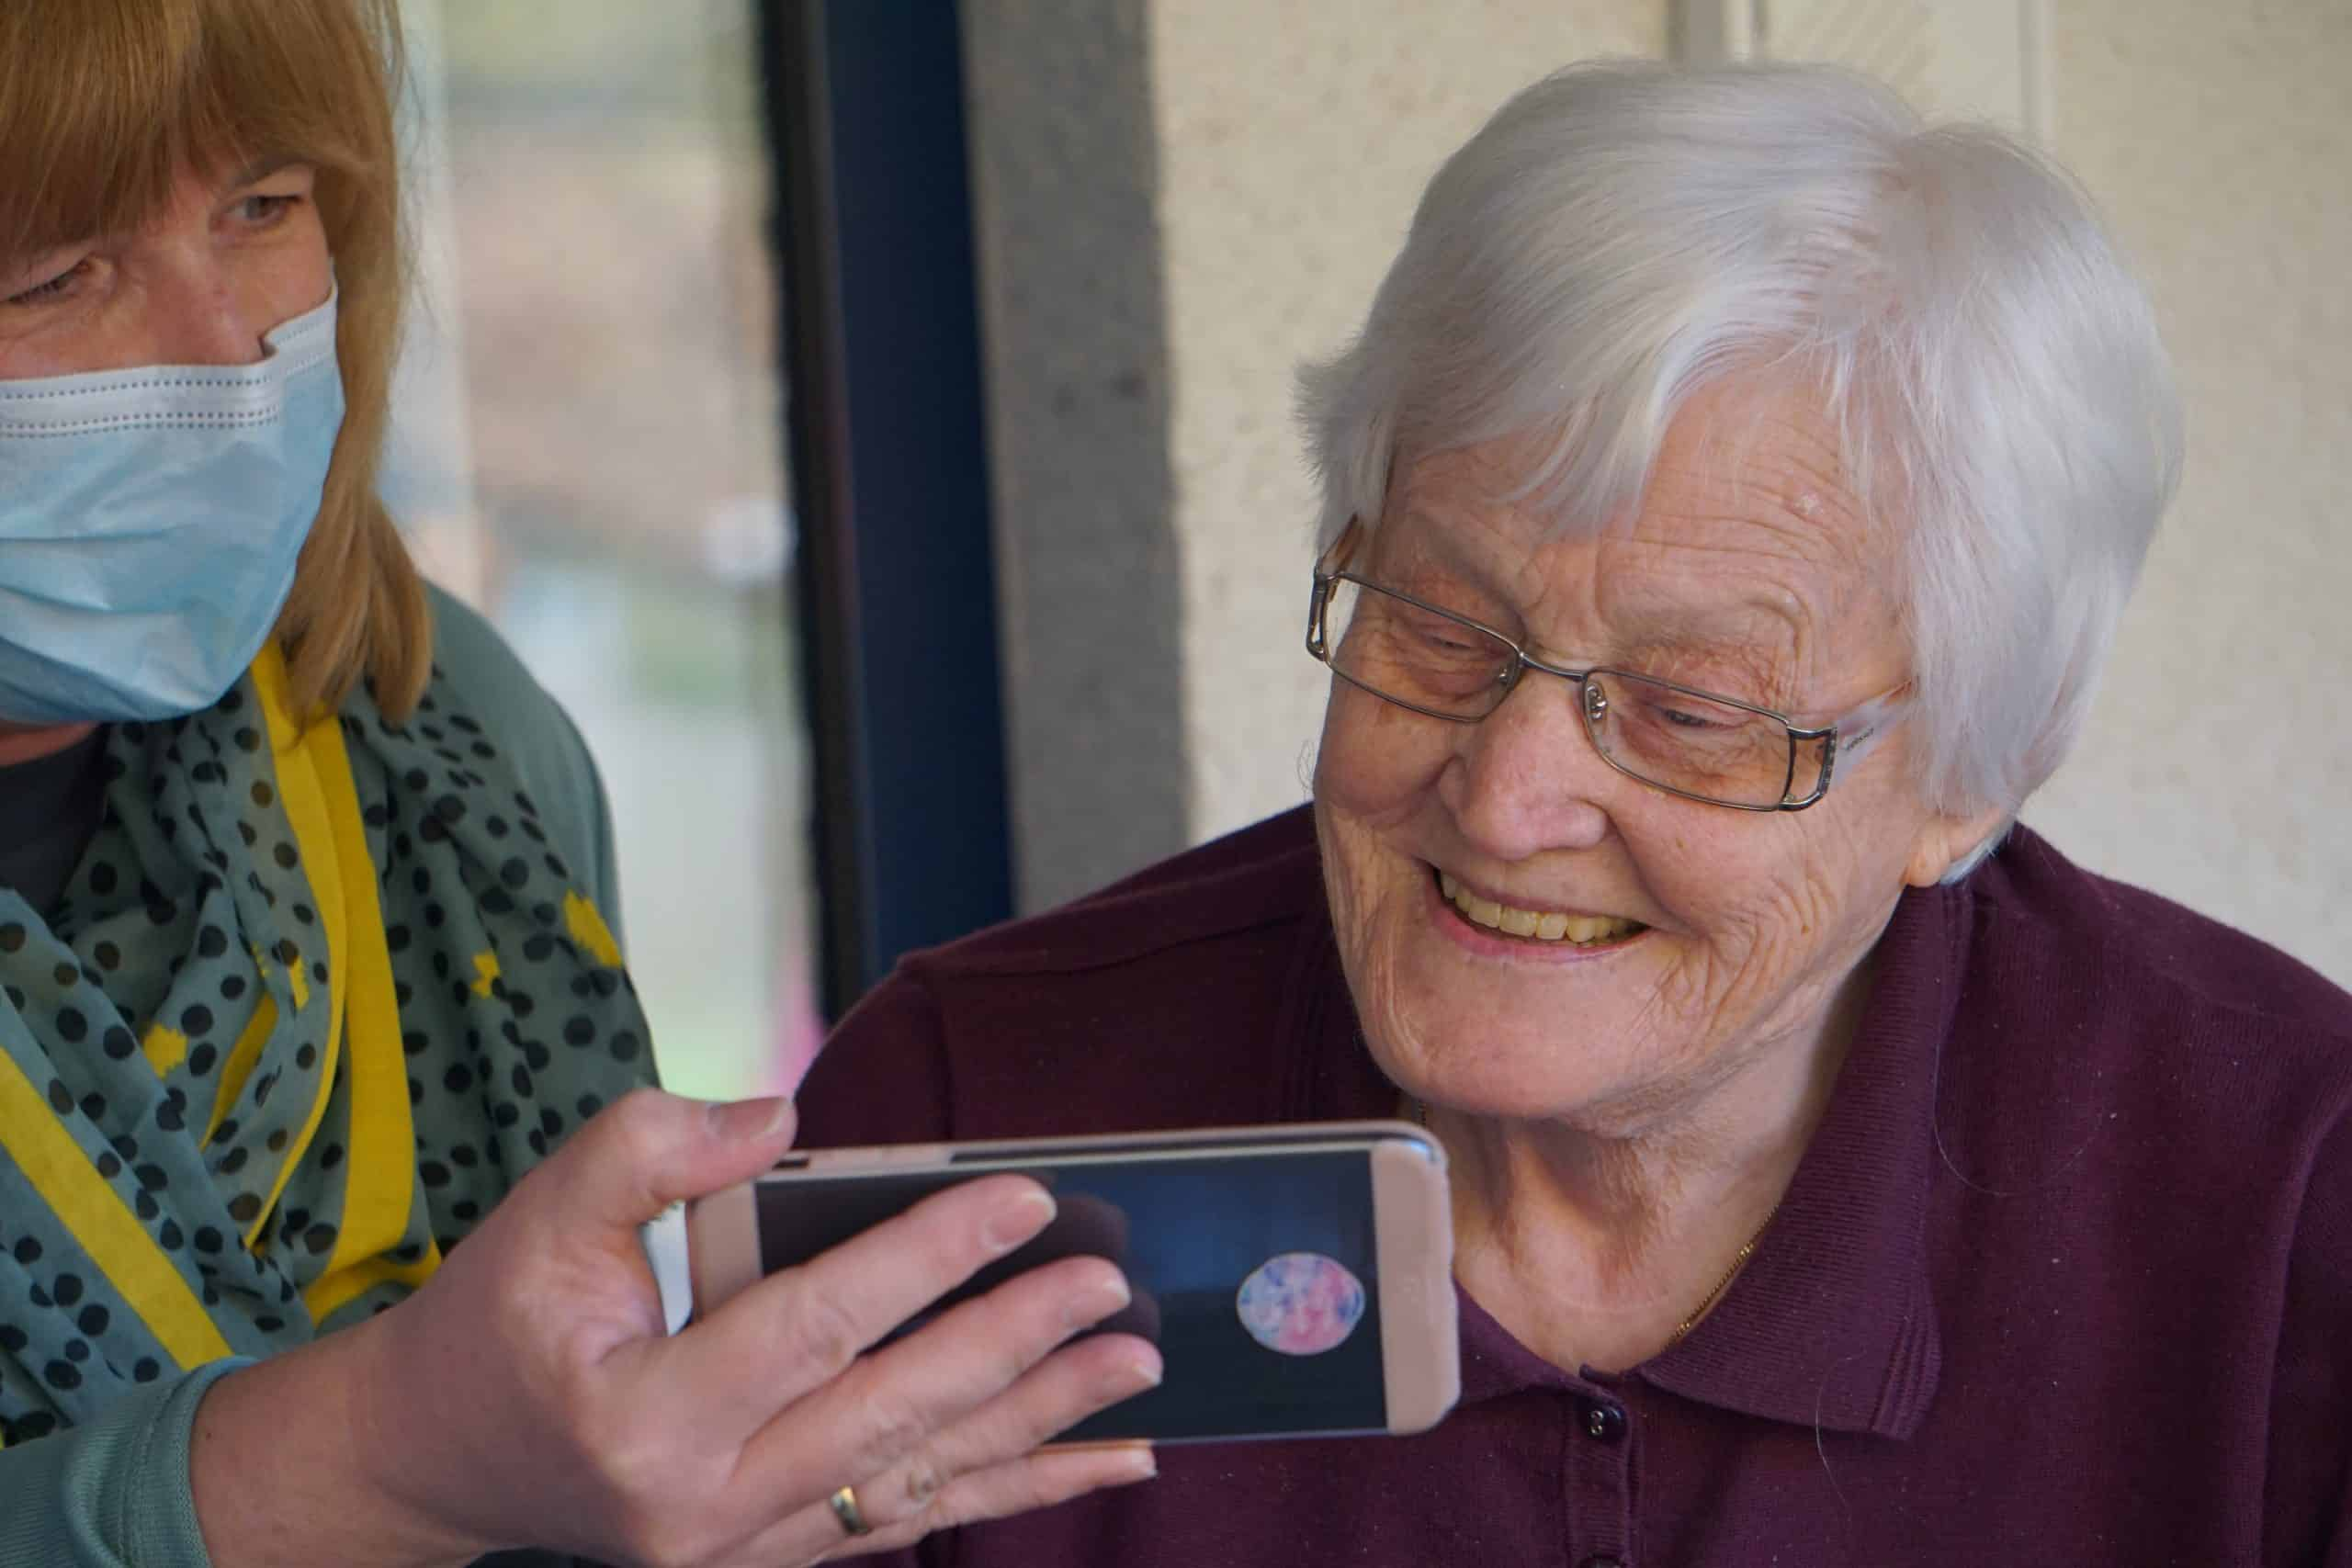 Connectivity in Aged Care